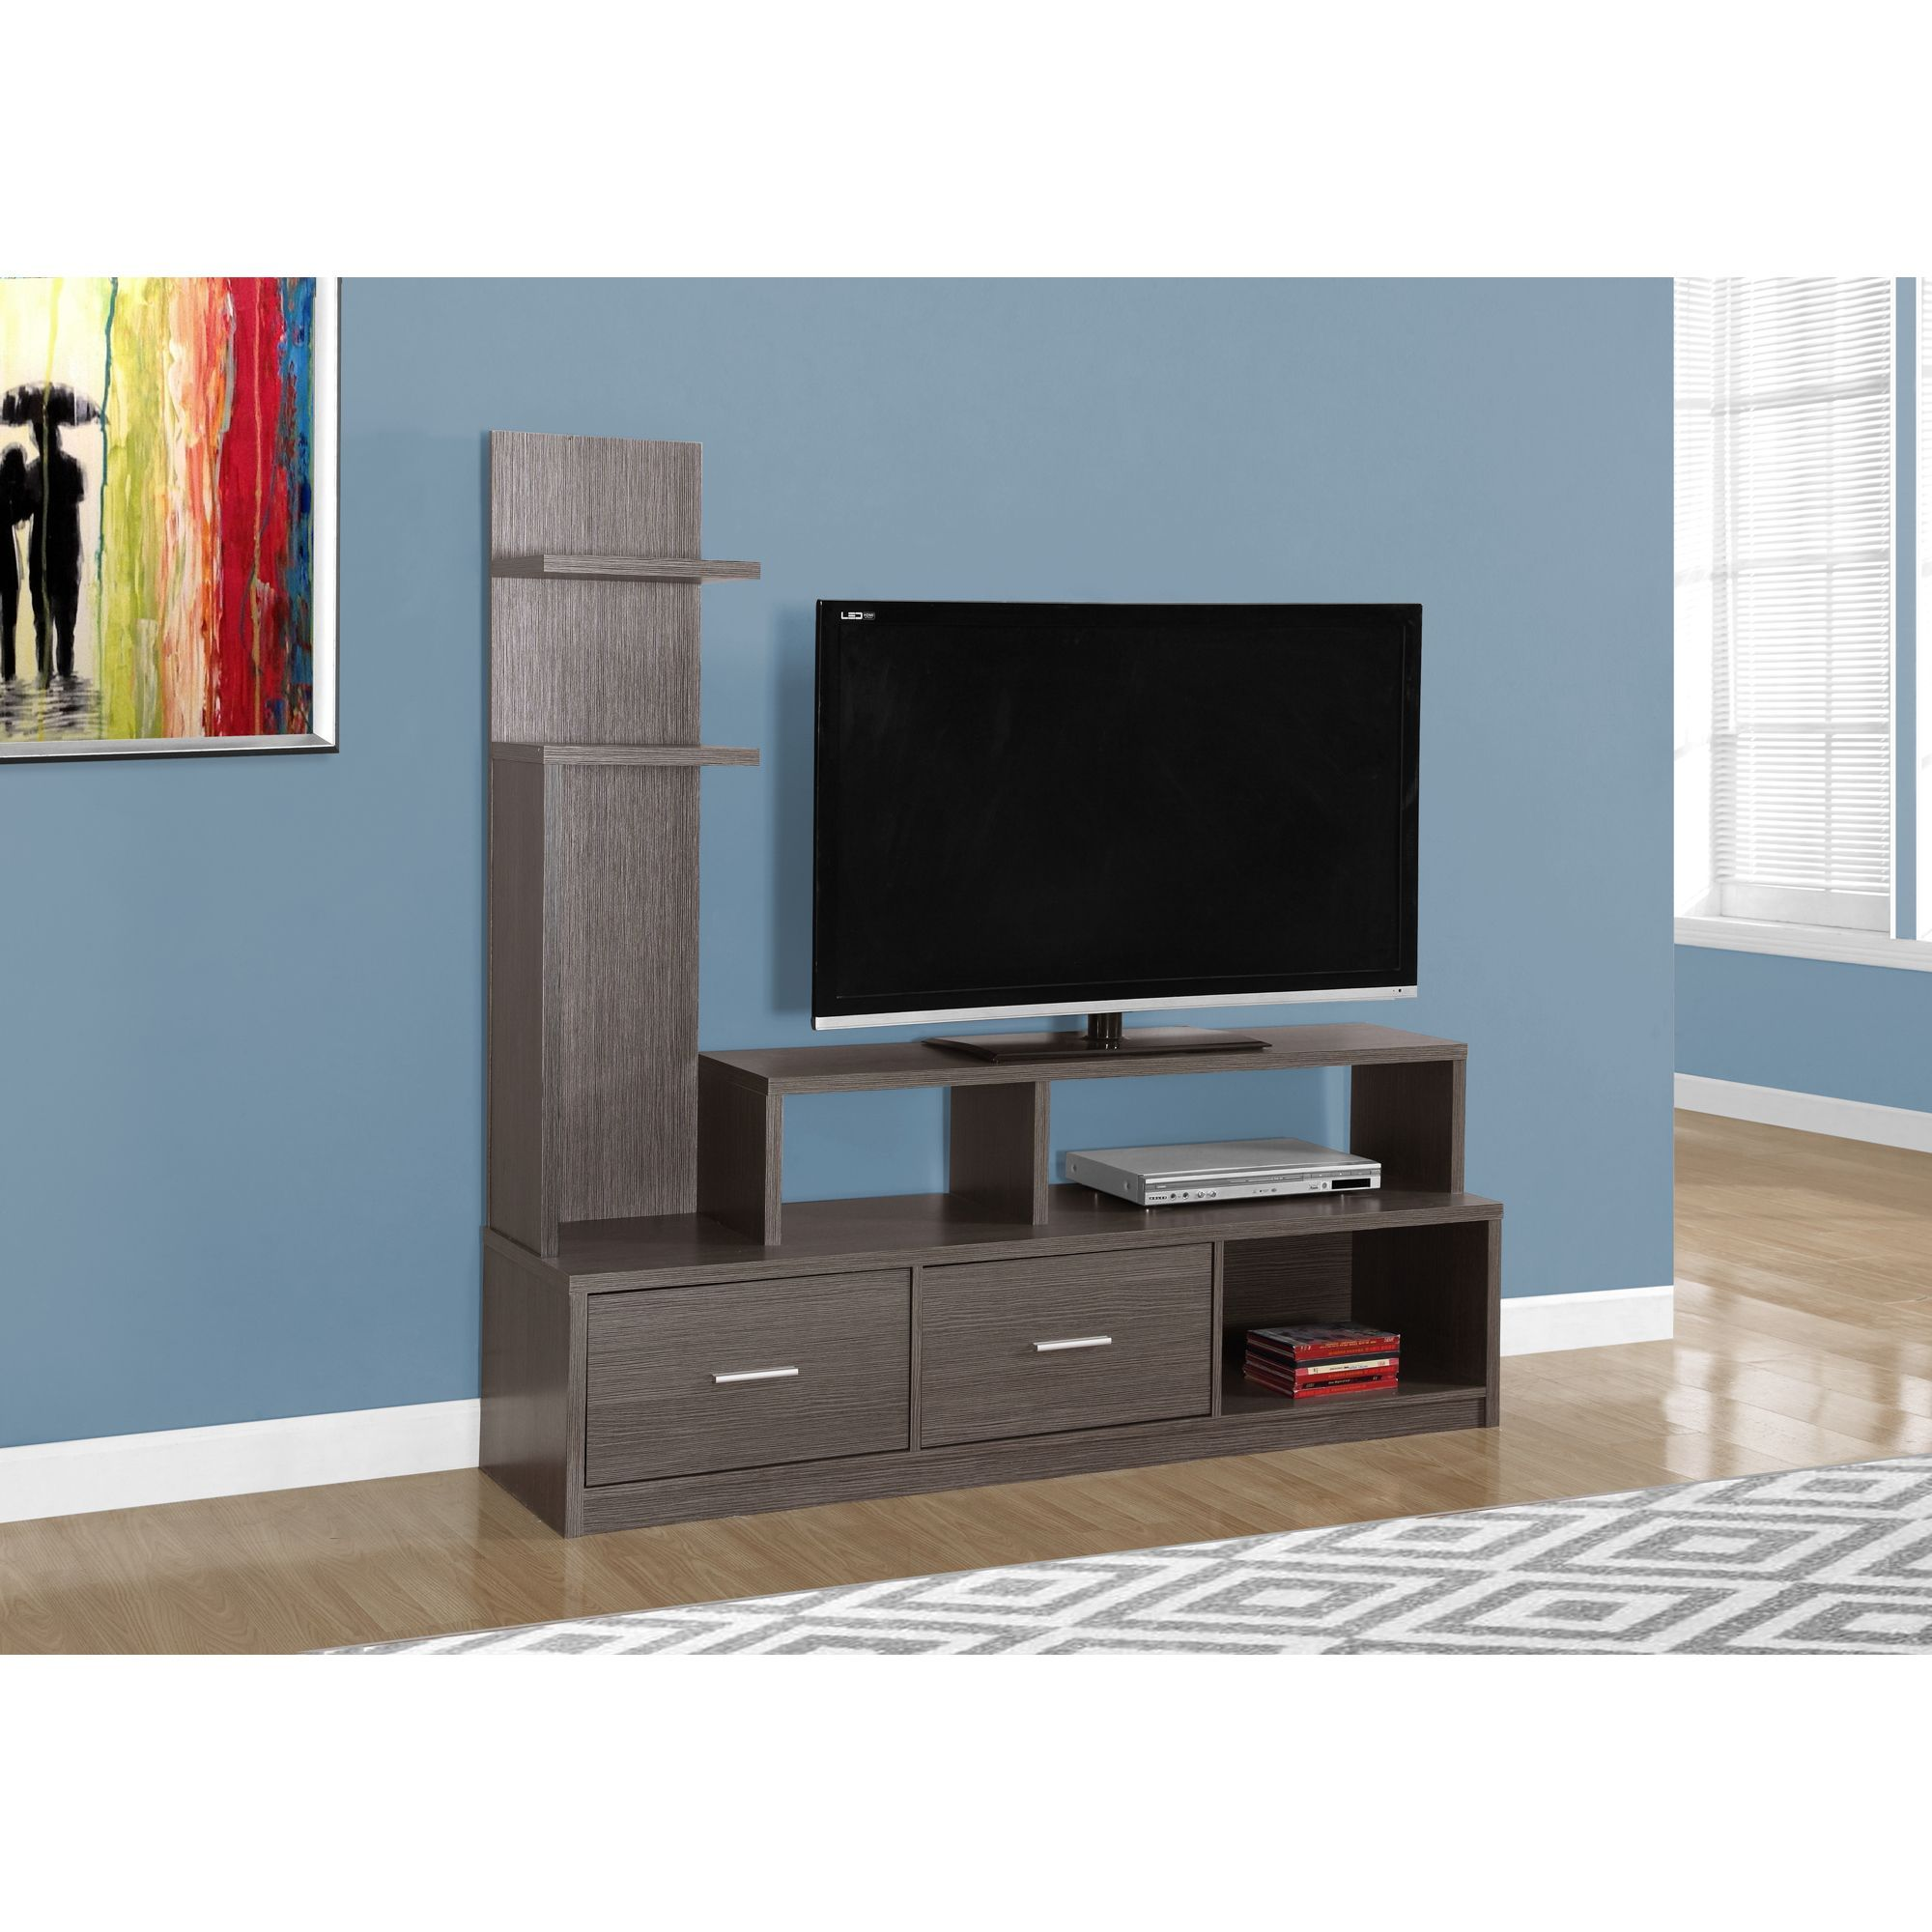 Monarch Grey Wood Grain Look Tv Stand And Display Tower Tv Stand  # Muebles Fiasini